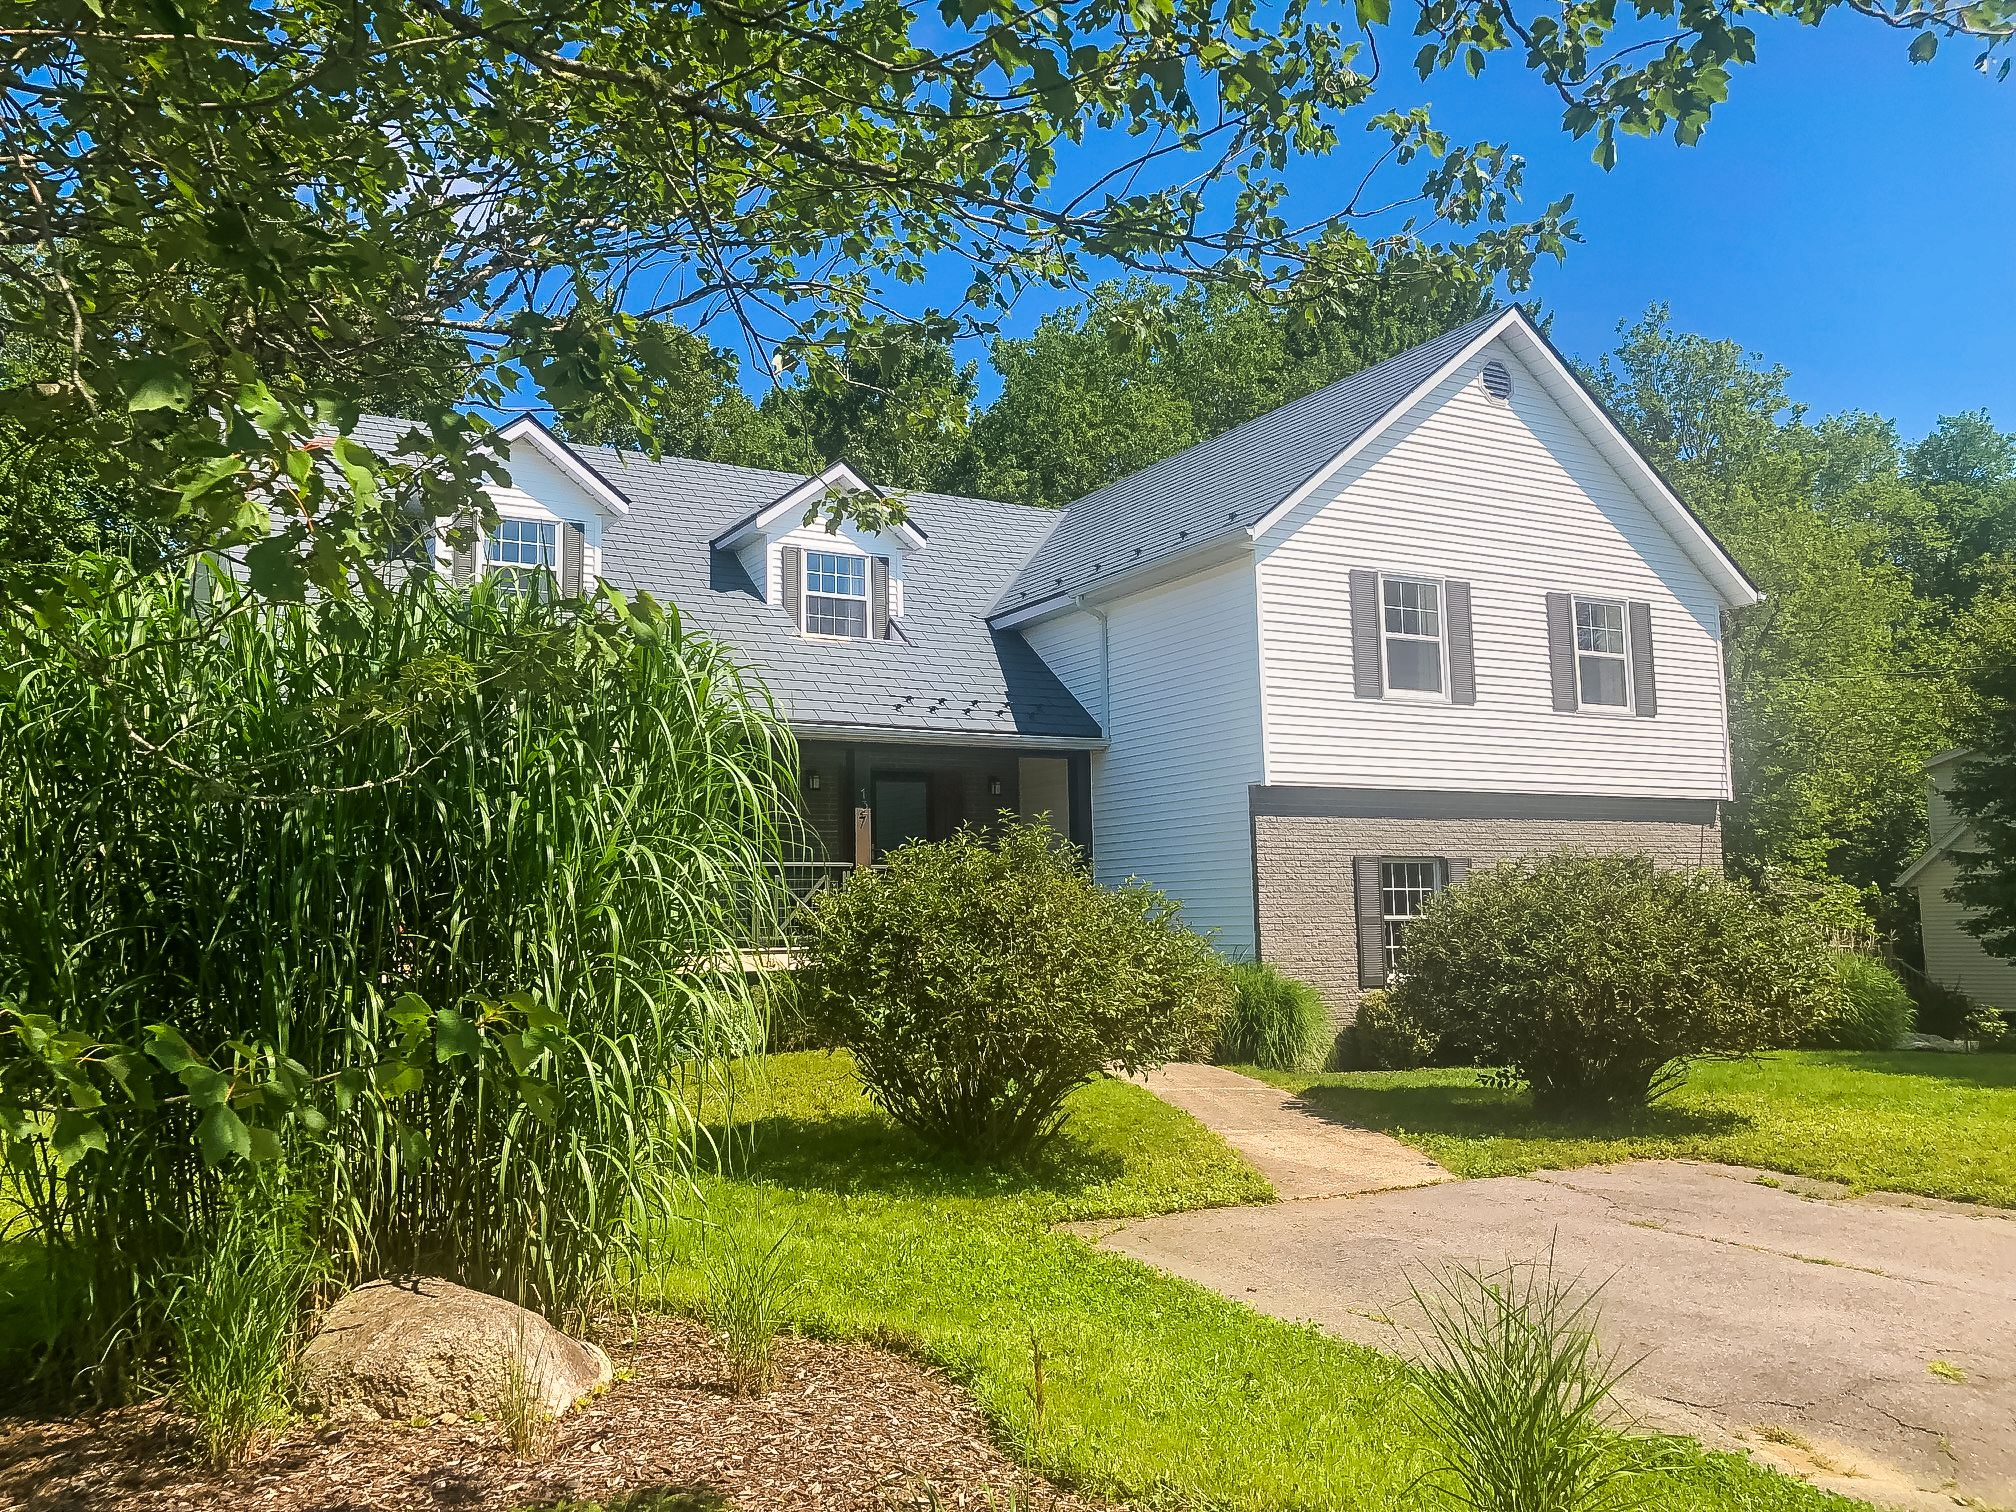 Main Photo: 137 Olympiad Avenue in Bridgewater: 405-Lunenburg County Residential for sale (South Shore)  : MLS®# 202122353